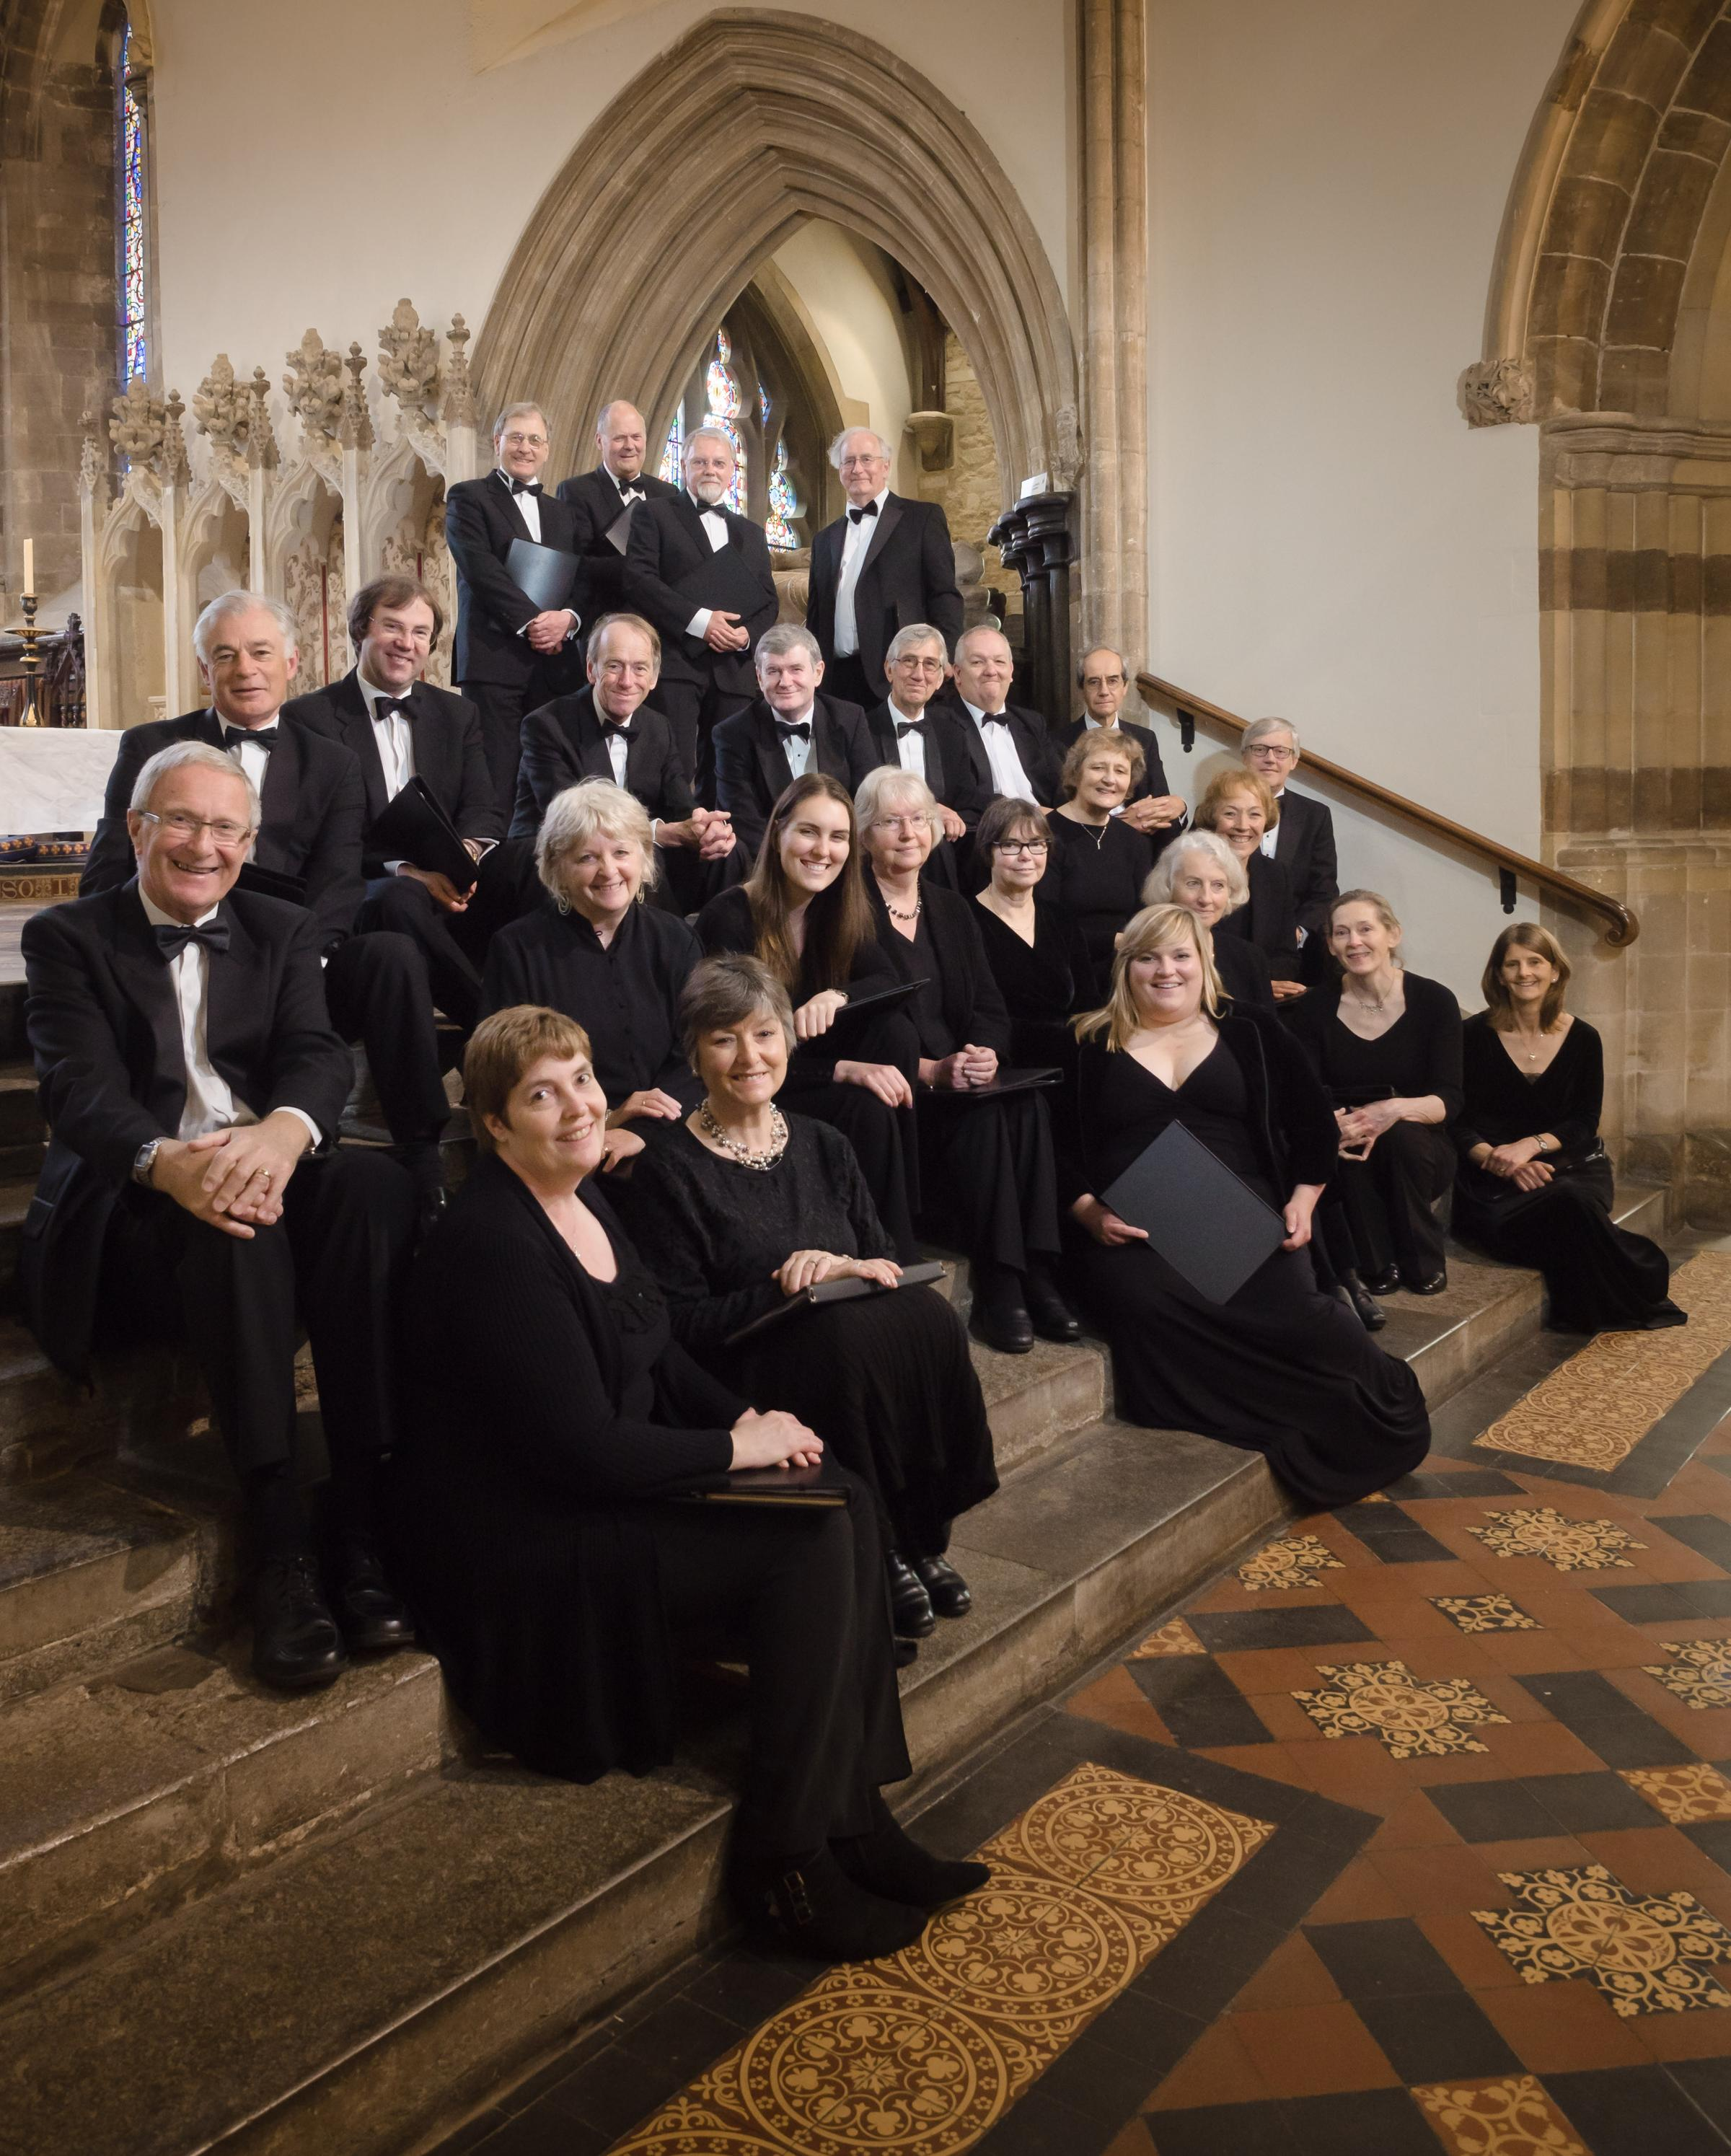 Bournemouth Sinfonietta Choir - Come and Sing – Dream of Gerontius